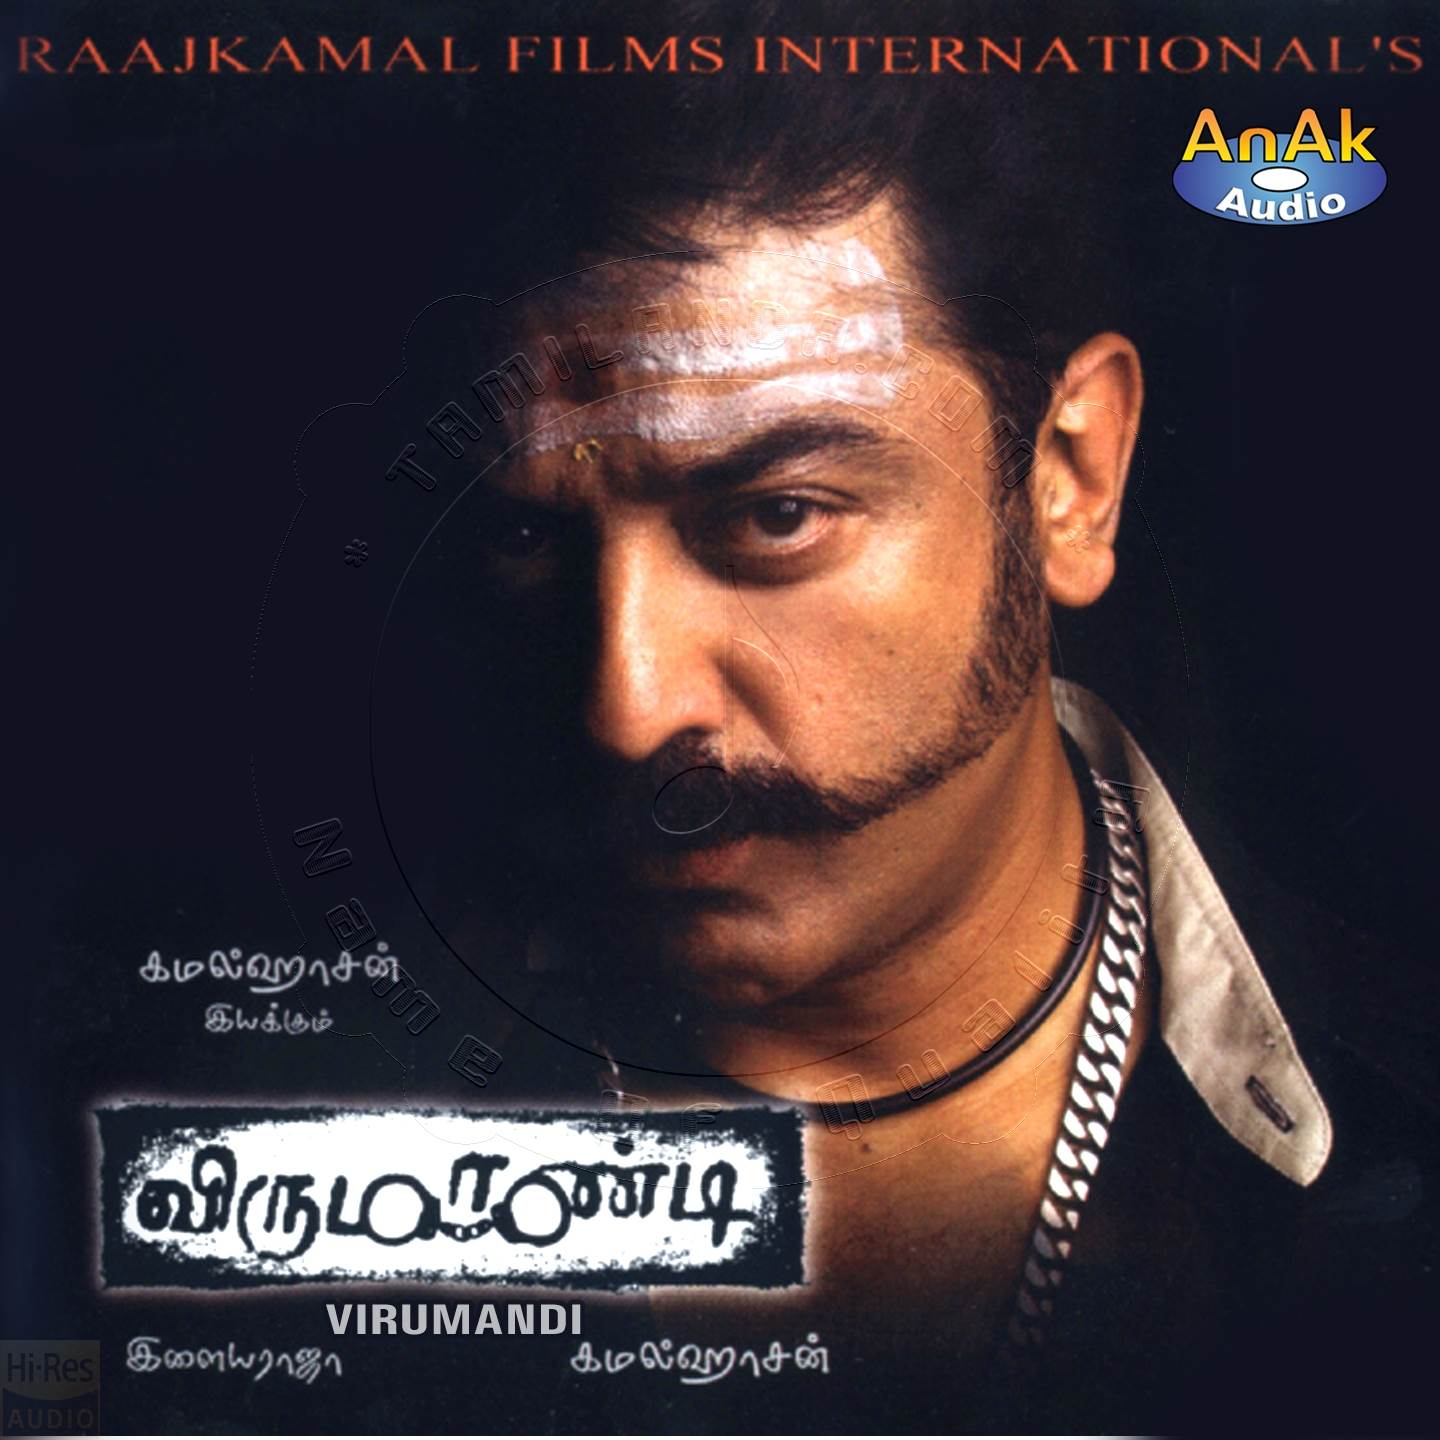 Virumaandi 16 BIT FLAC Songs